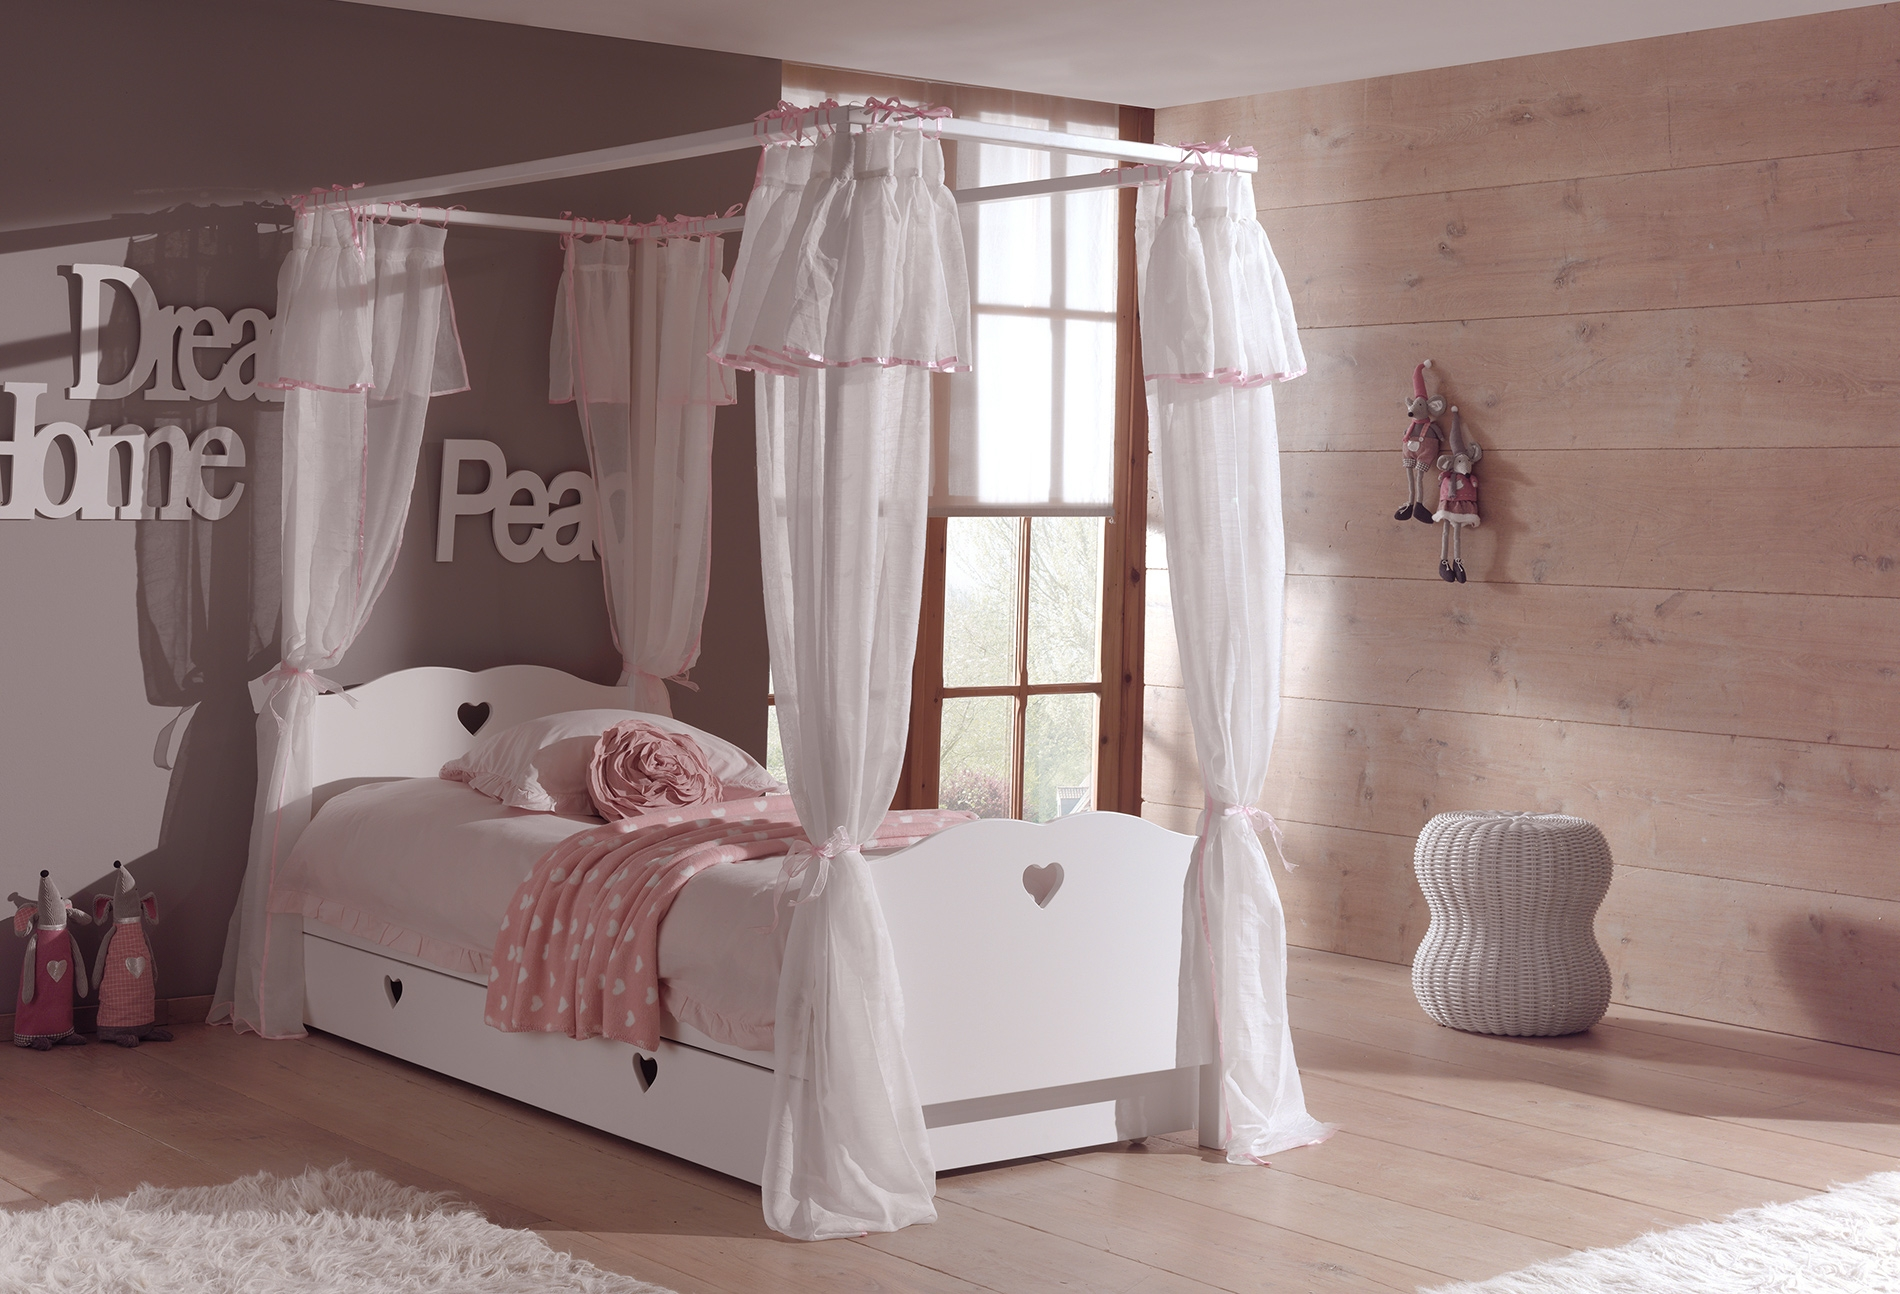 lit baldaquin enfant so romantique de la chambre emilie so nuit. Black Bedroom Furniture Sets. Home Design Ideas